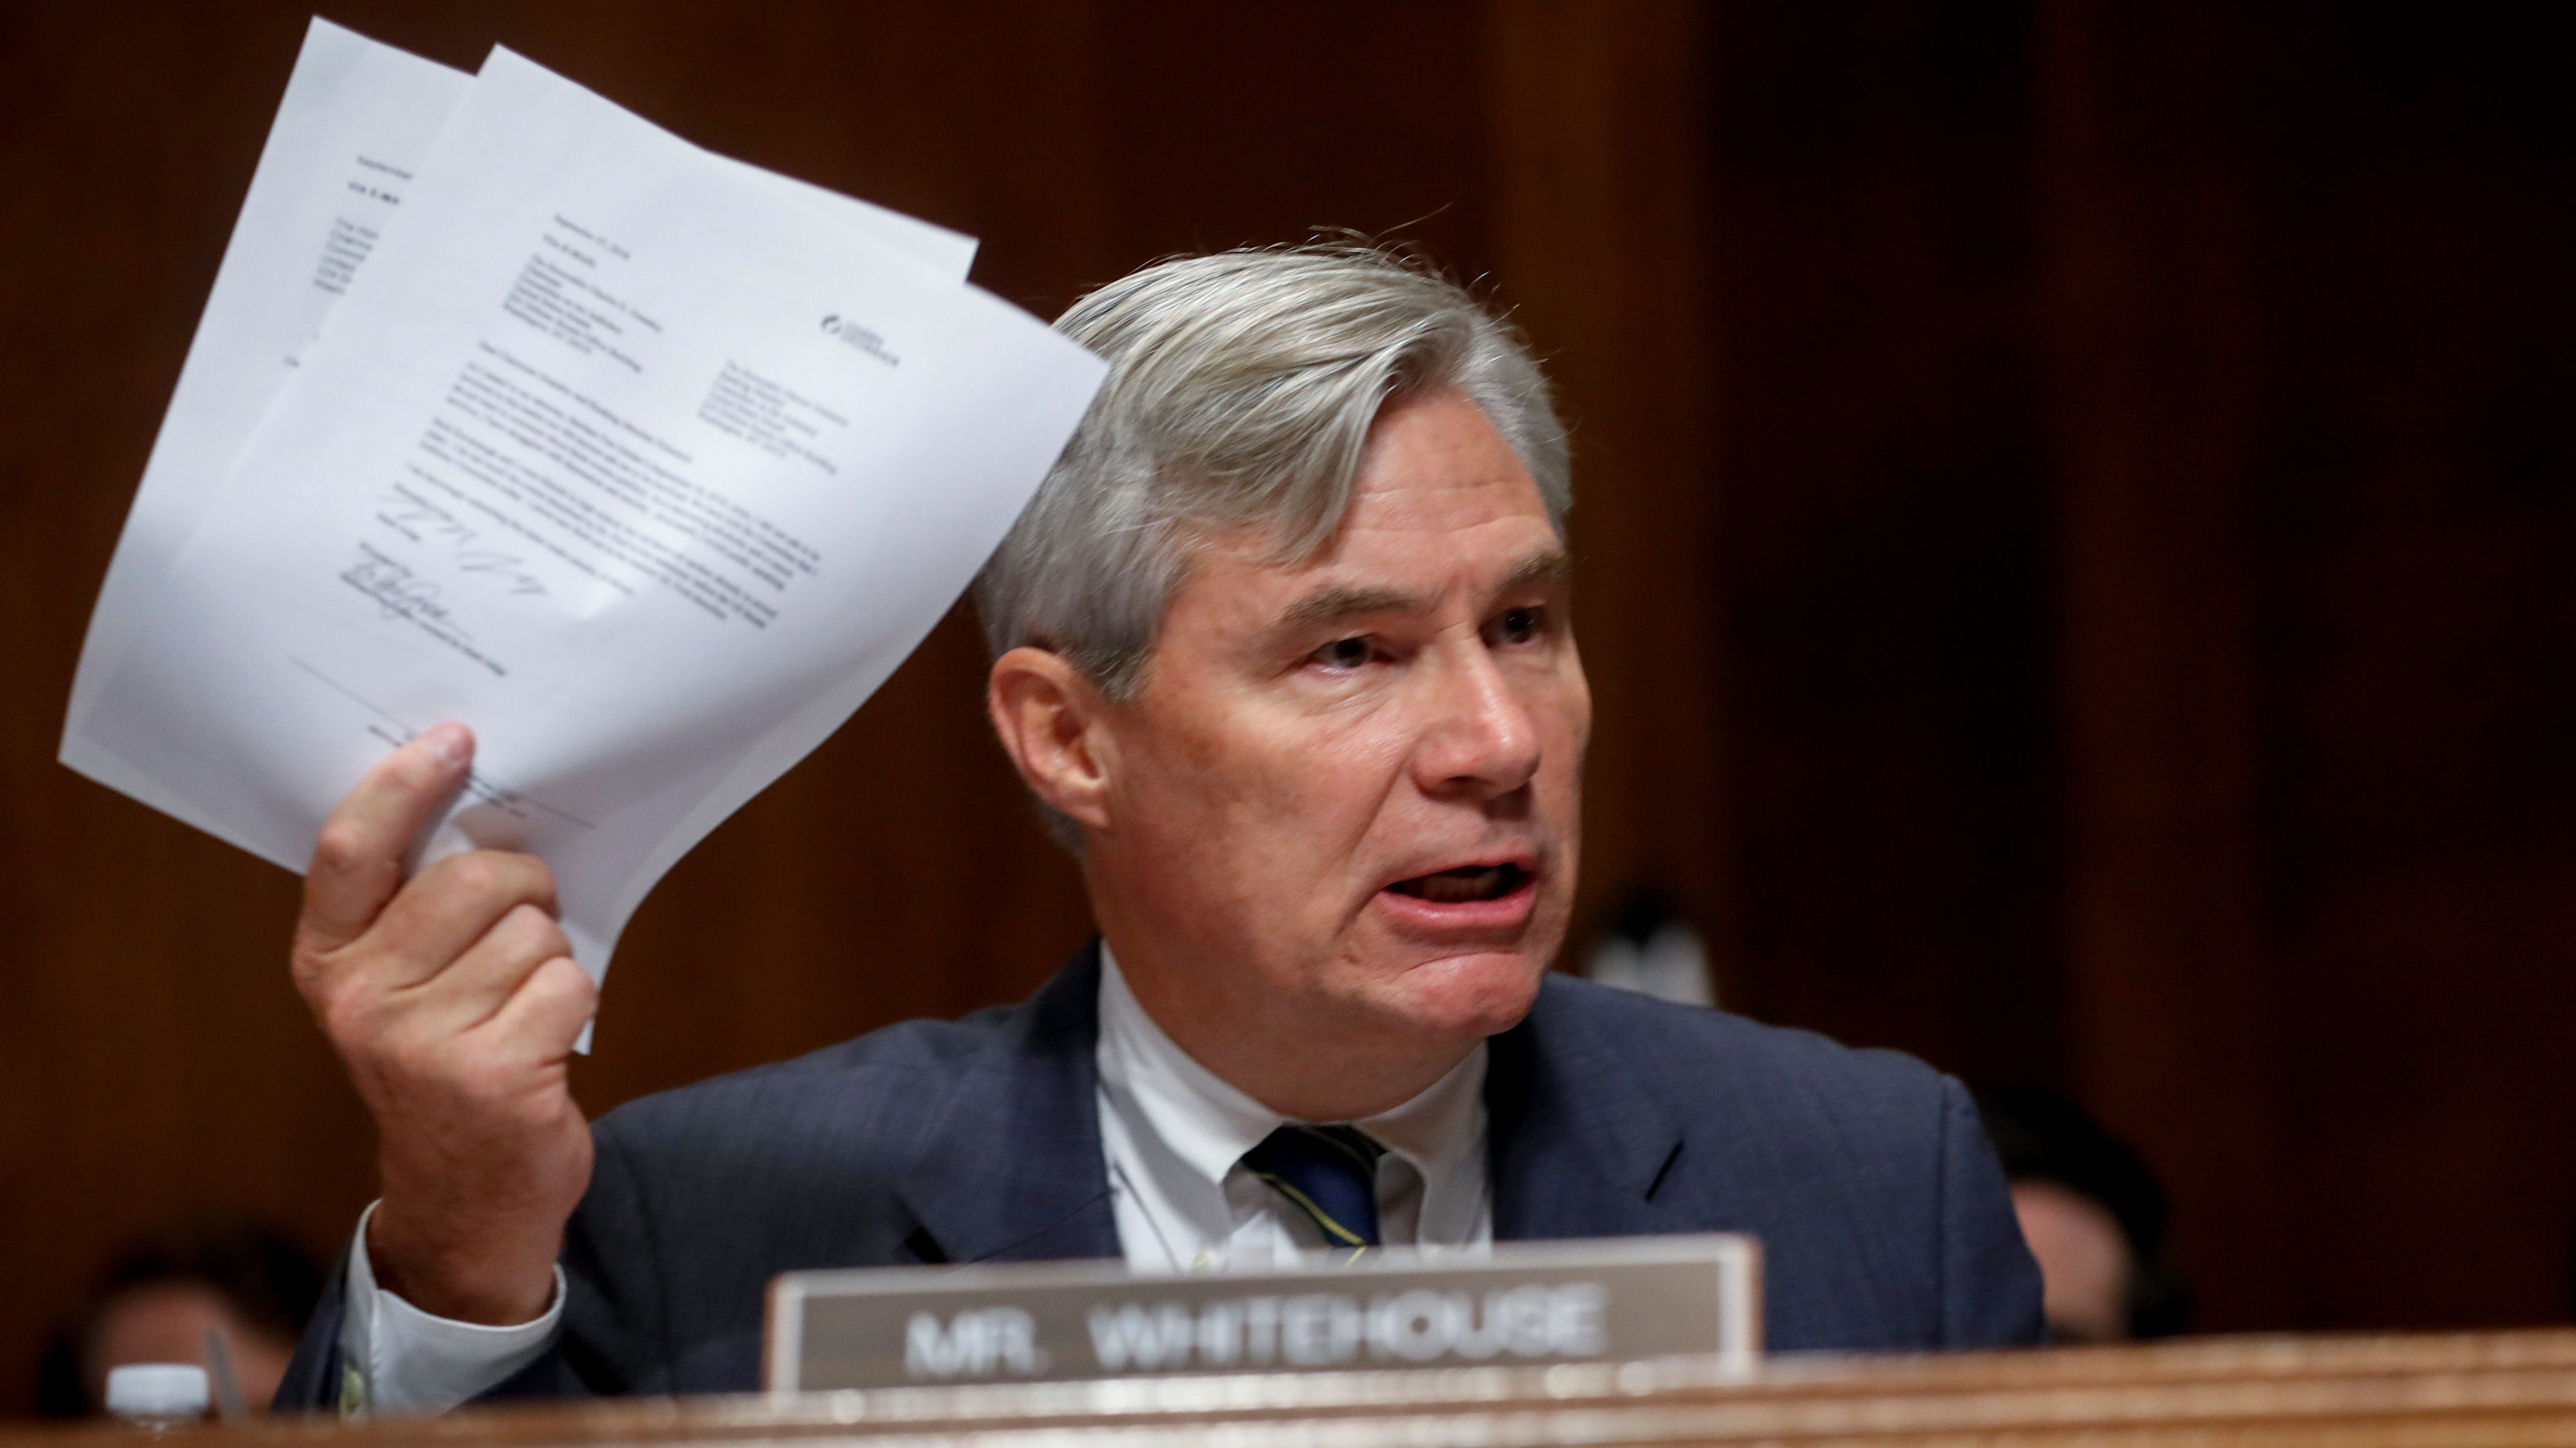 Sheldon Whitehouse brandishes documents during a Senate Judiciary Committee hearing for Brett Kavanaugh's supreme court nomination.